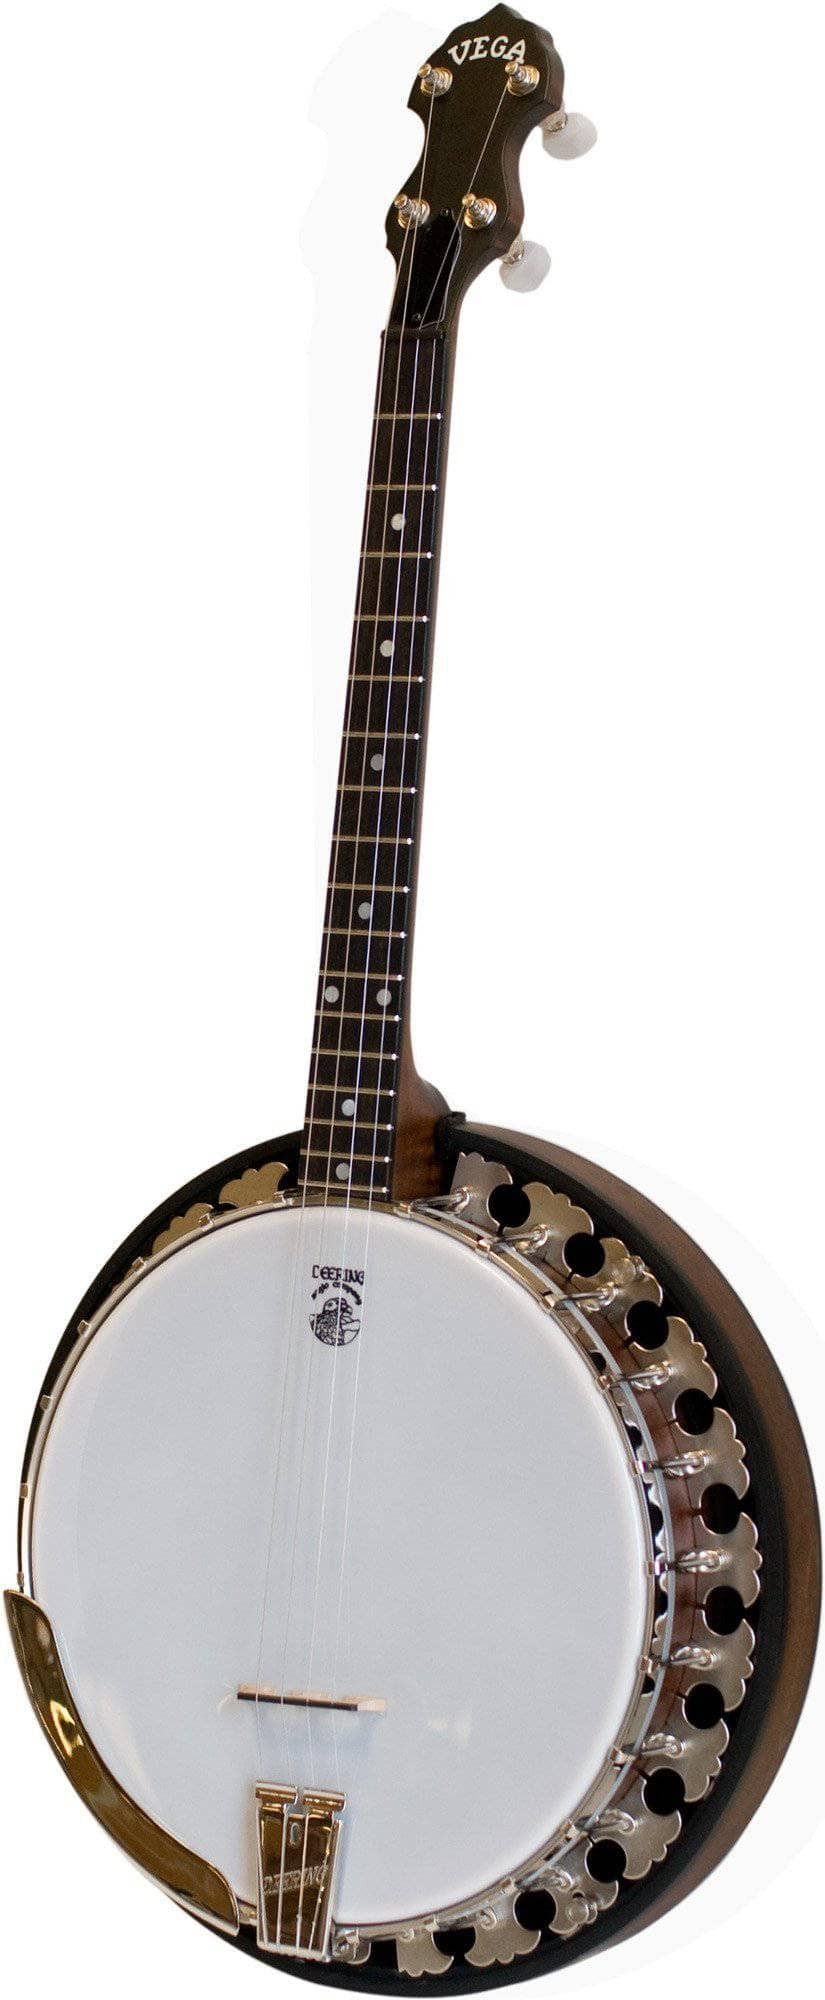 Vega Senator 17-Fret Irish Tenor Banjo w/Resonator - Banjo Studio  - 1